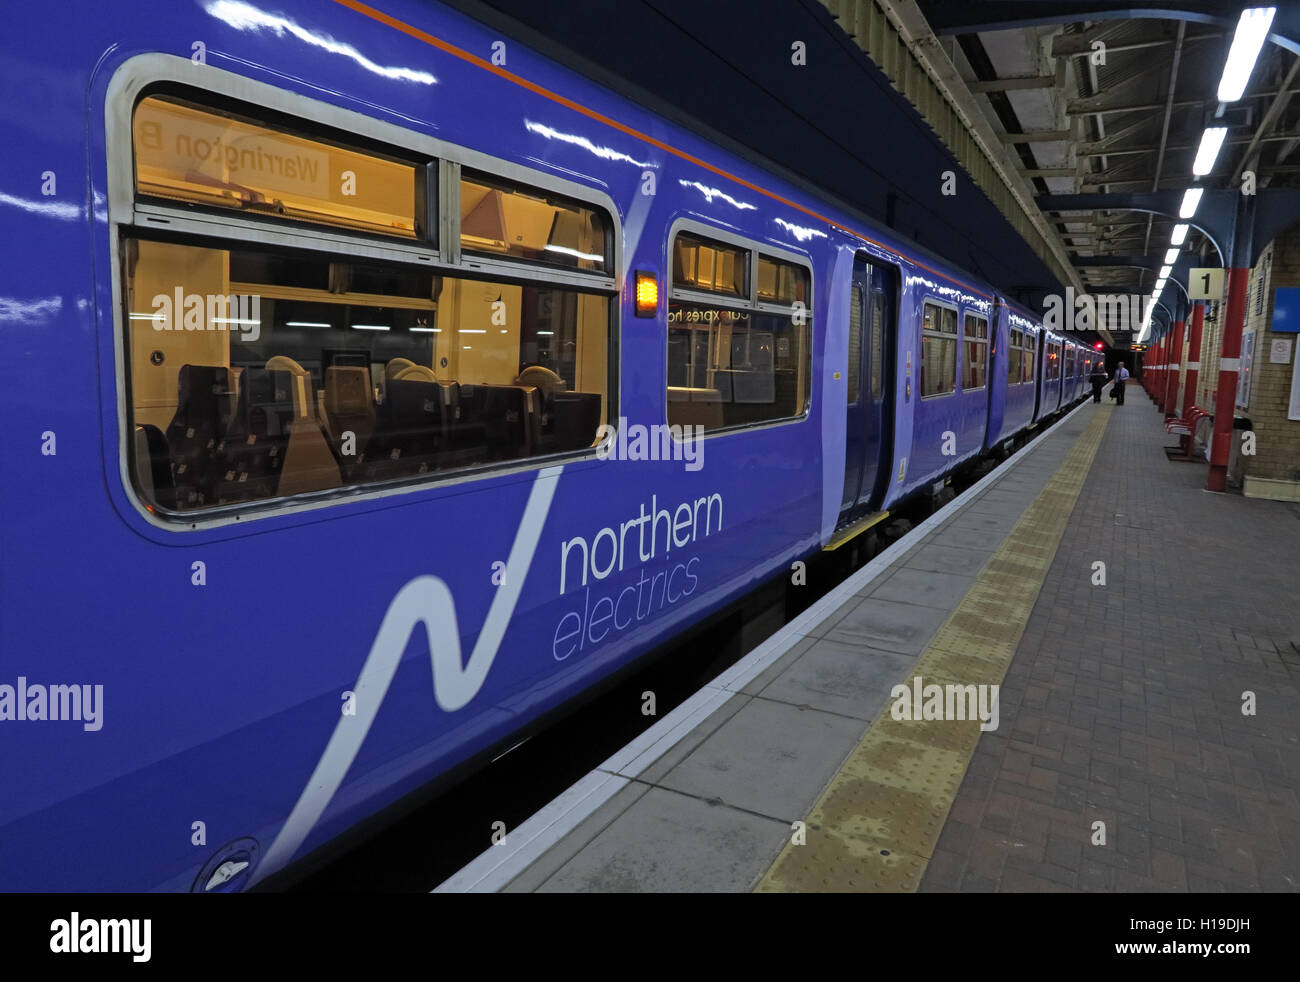 Northern Electrics, at Warrington Bank Quay Railway Station, Cheshire, England UK - Stock Image